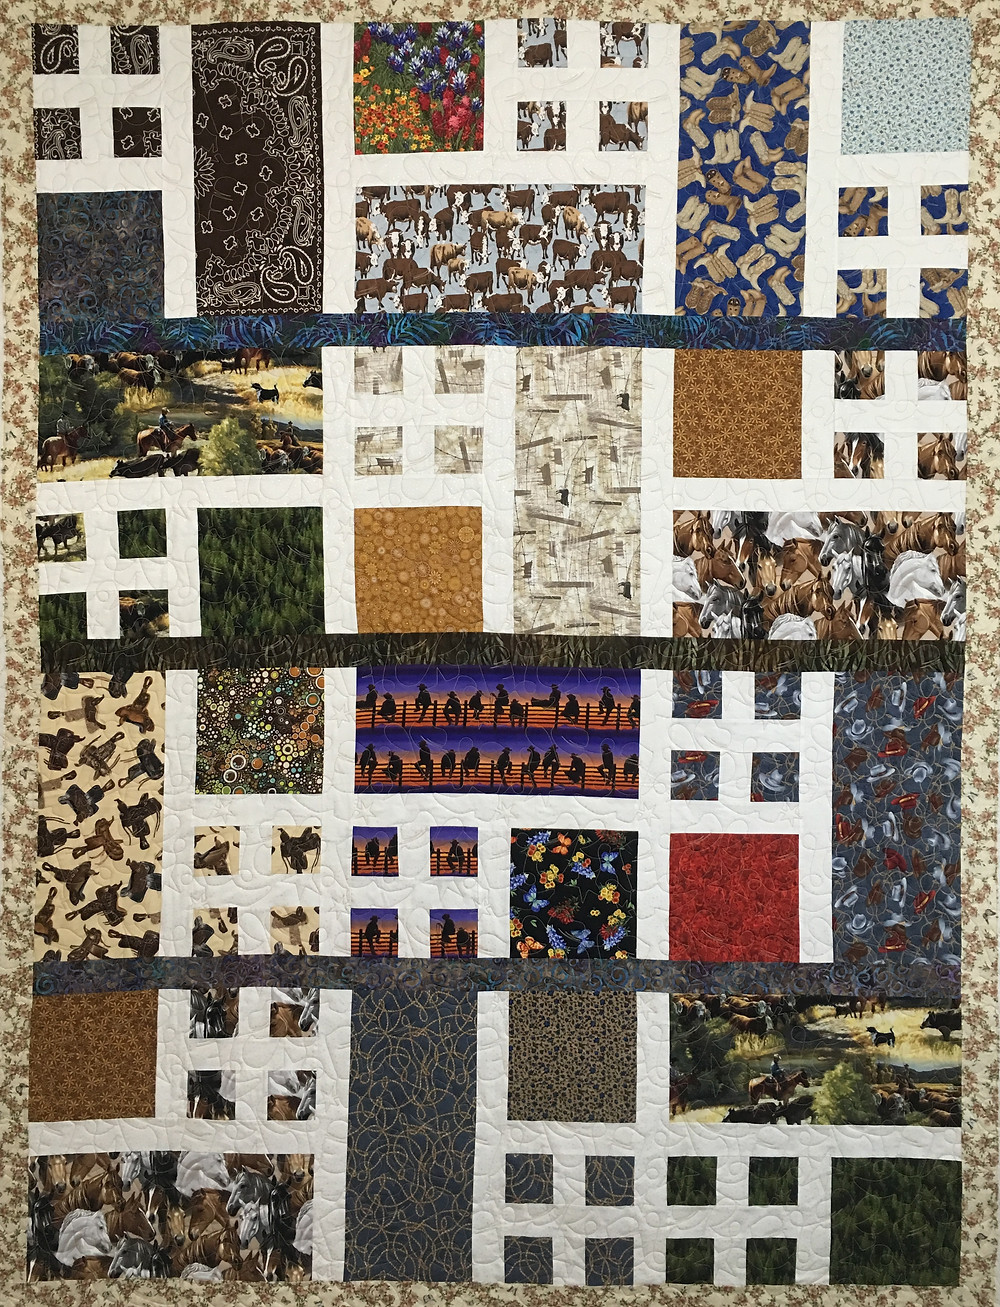 Western Theme Quilt made by Kristi Jones